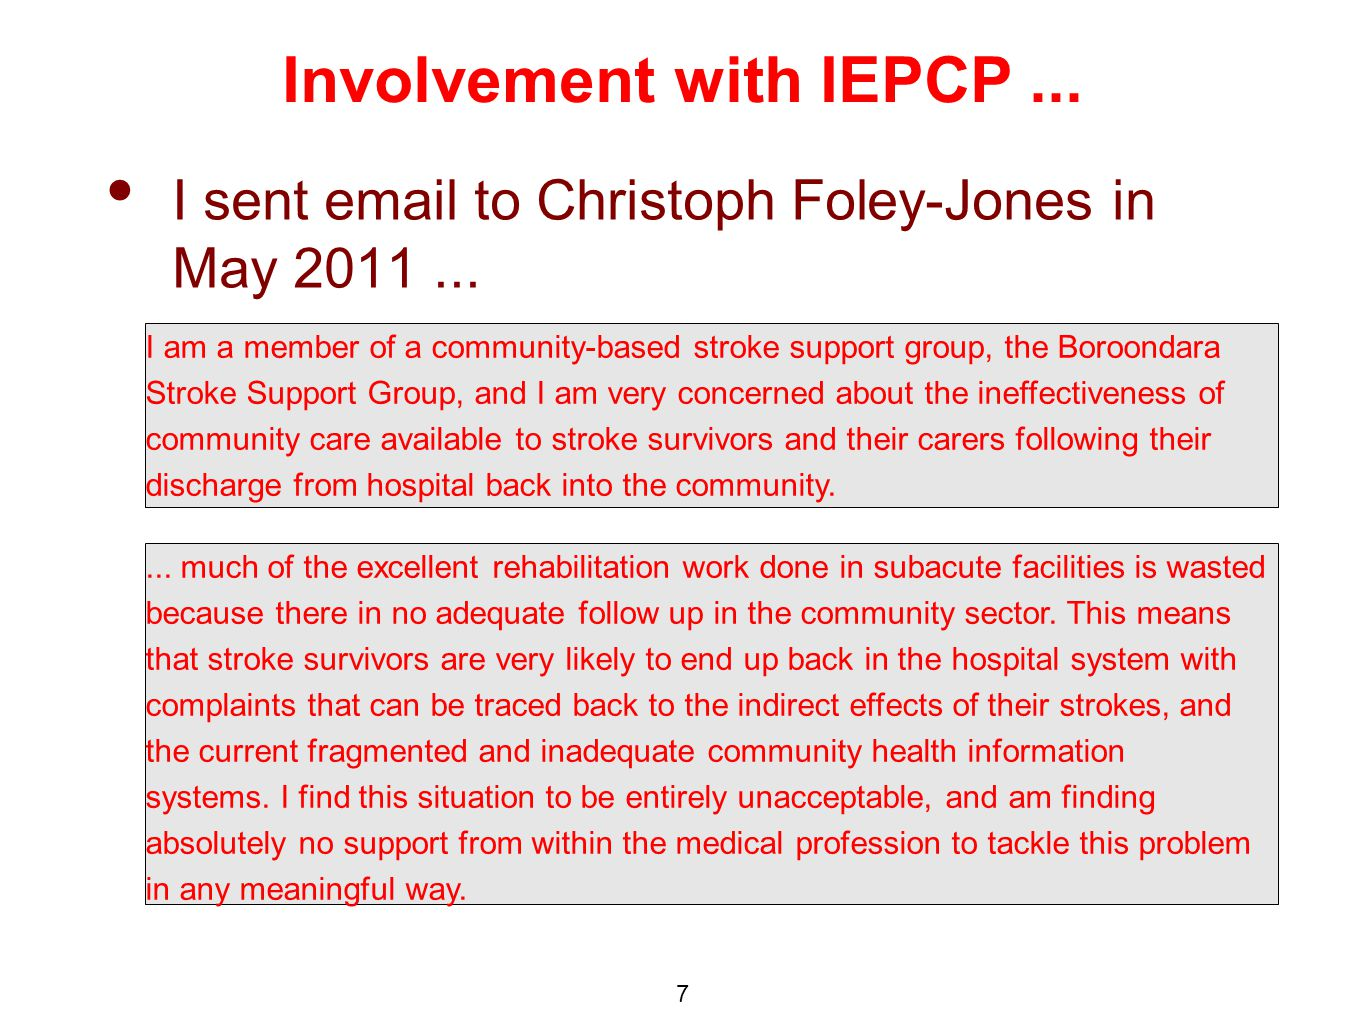 Involvement with IEPCP... I sent  to Christoph Foley-Jones in May